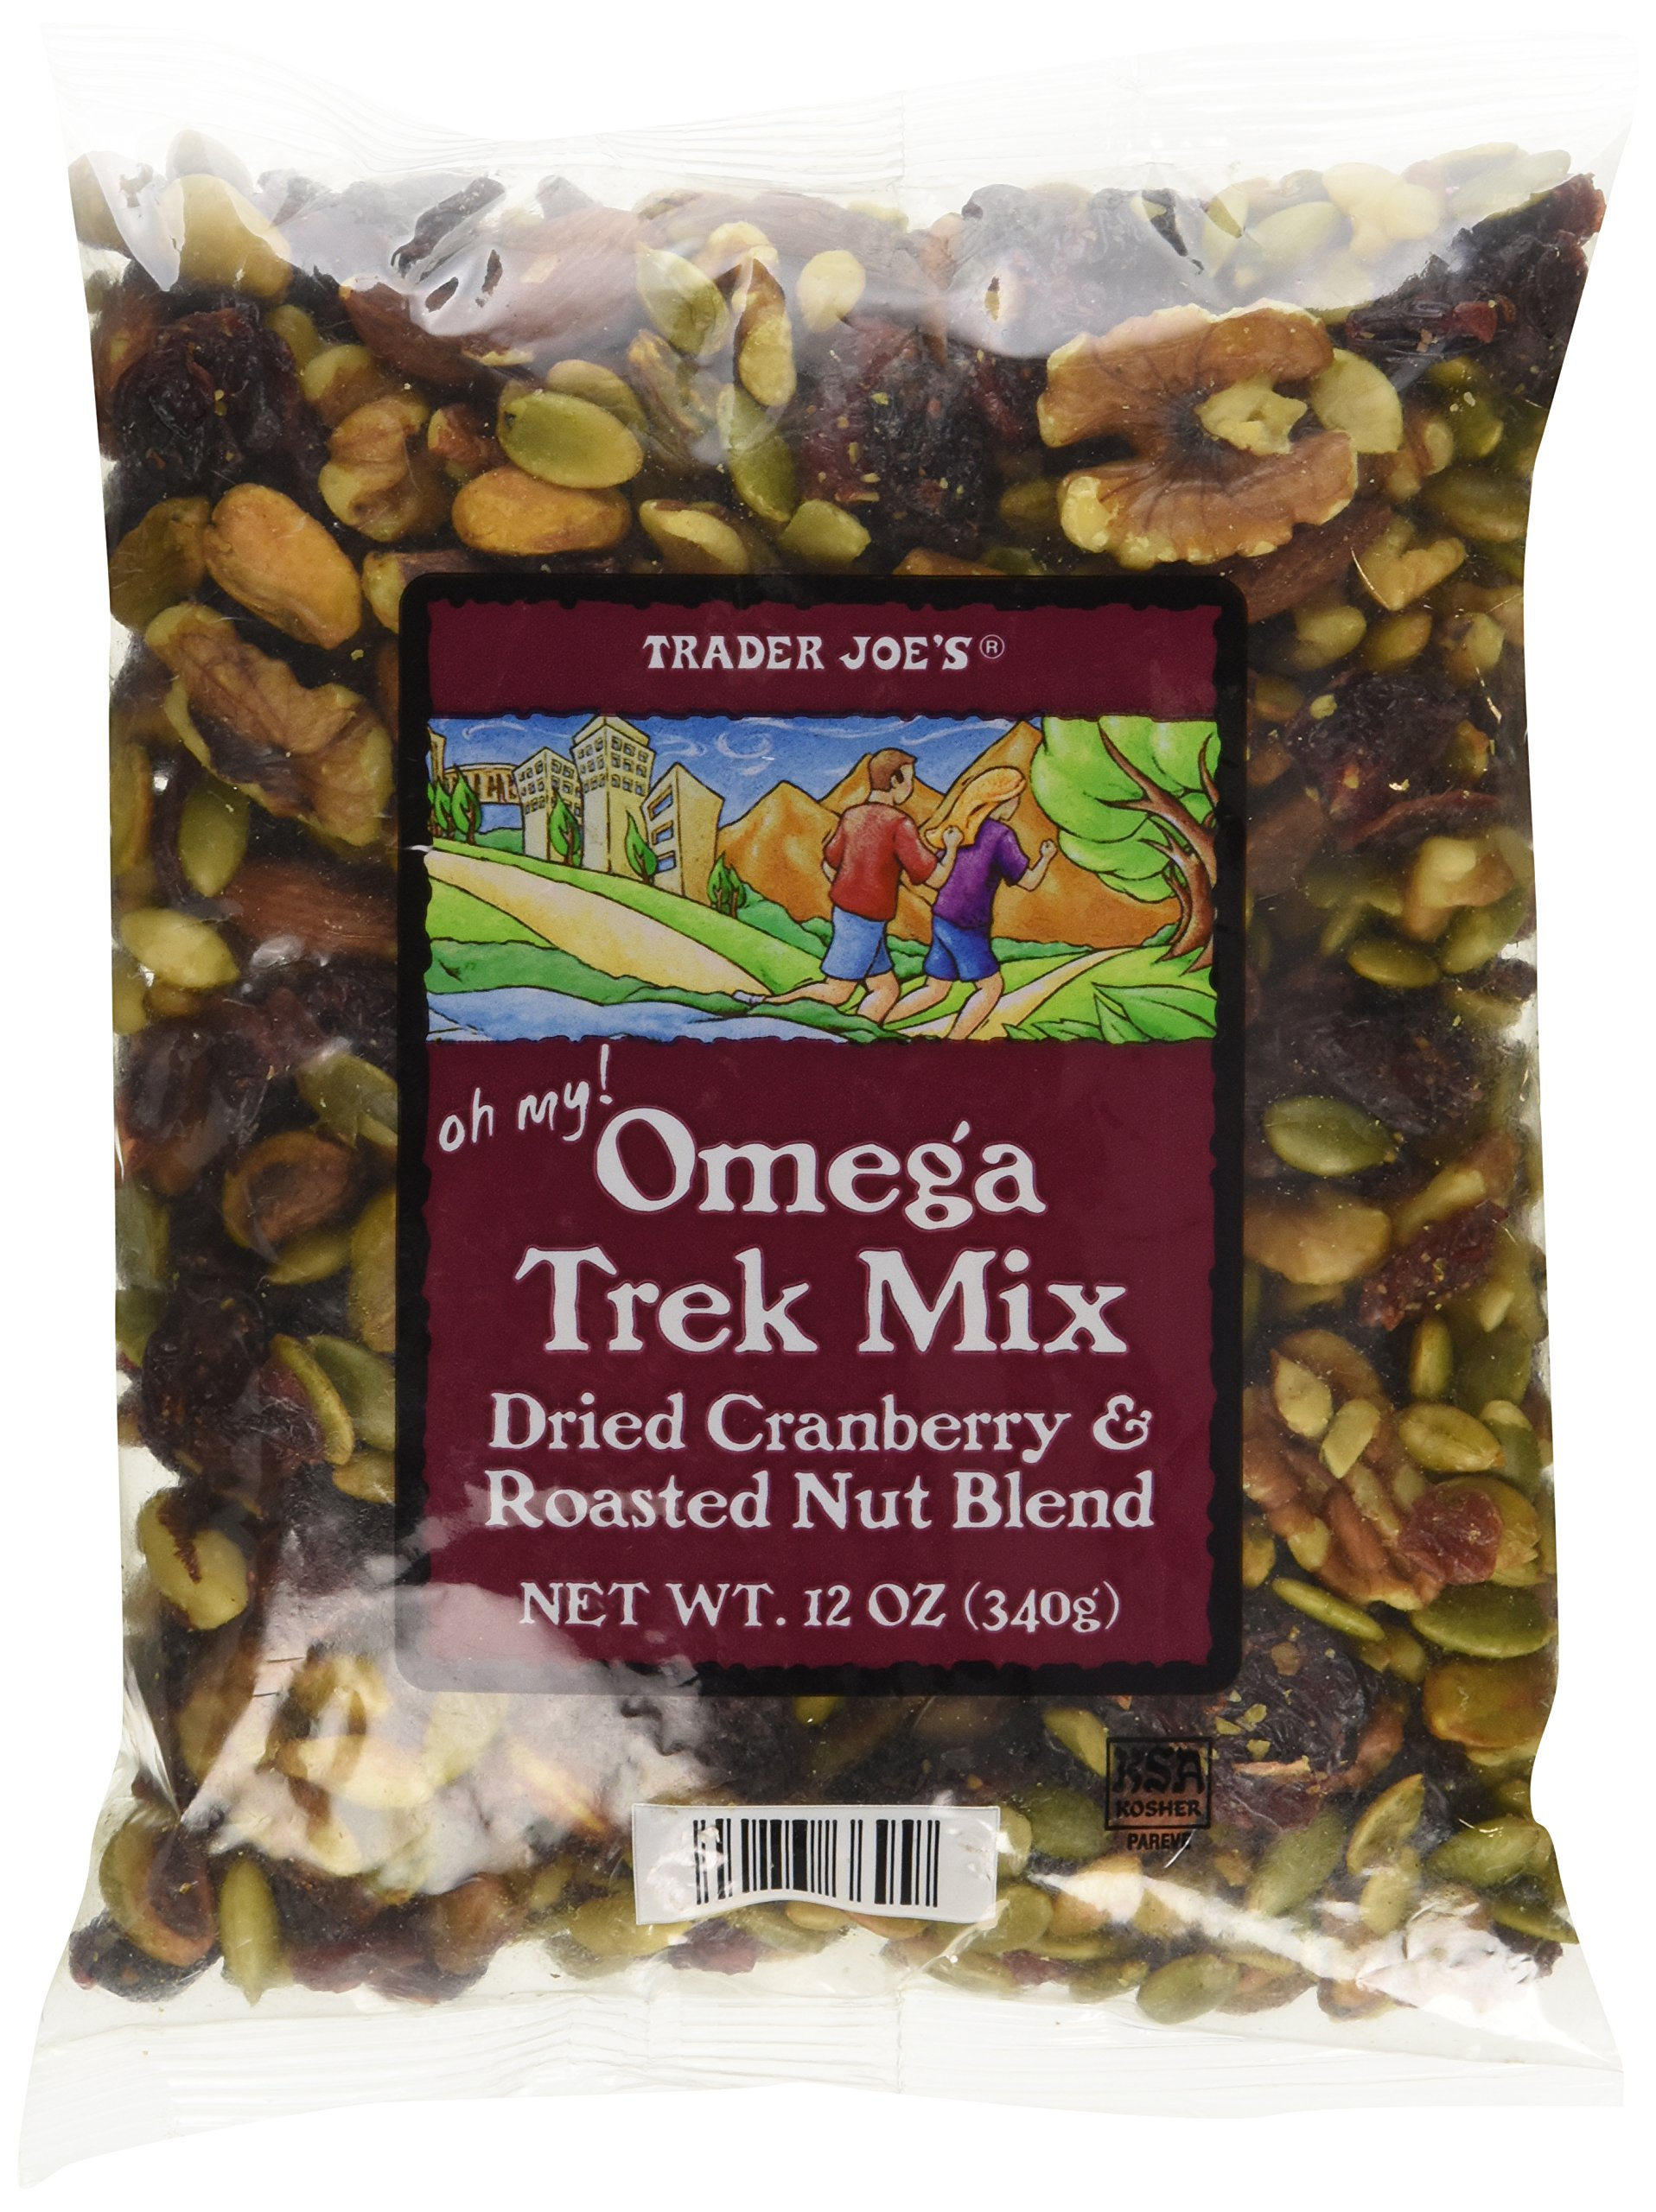 Trader Joe's Omega Trek Mix with Fortified Cranberries (12 oz) by Trader Joes